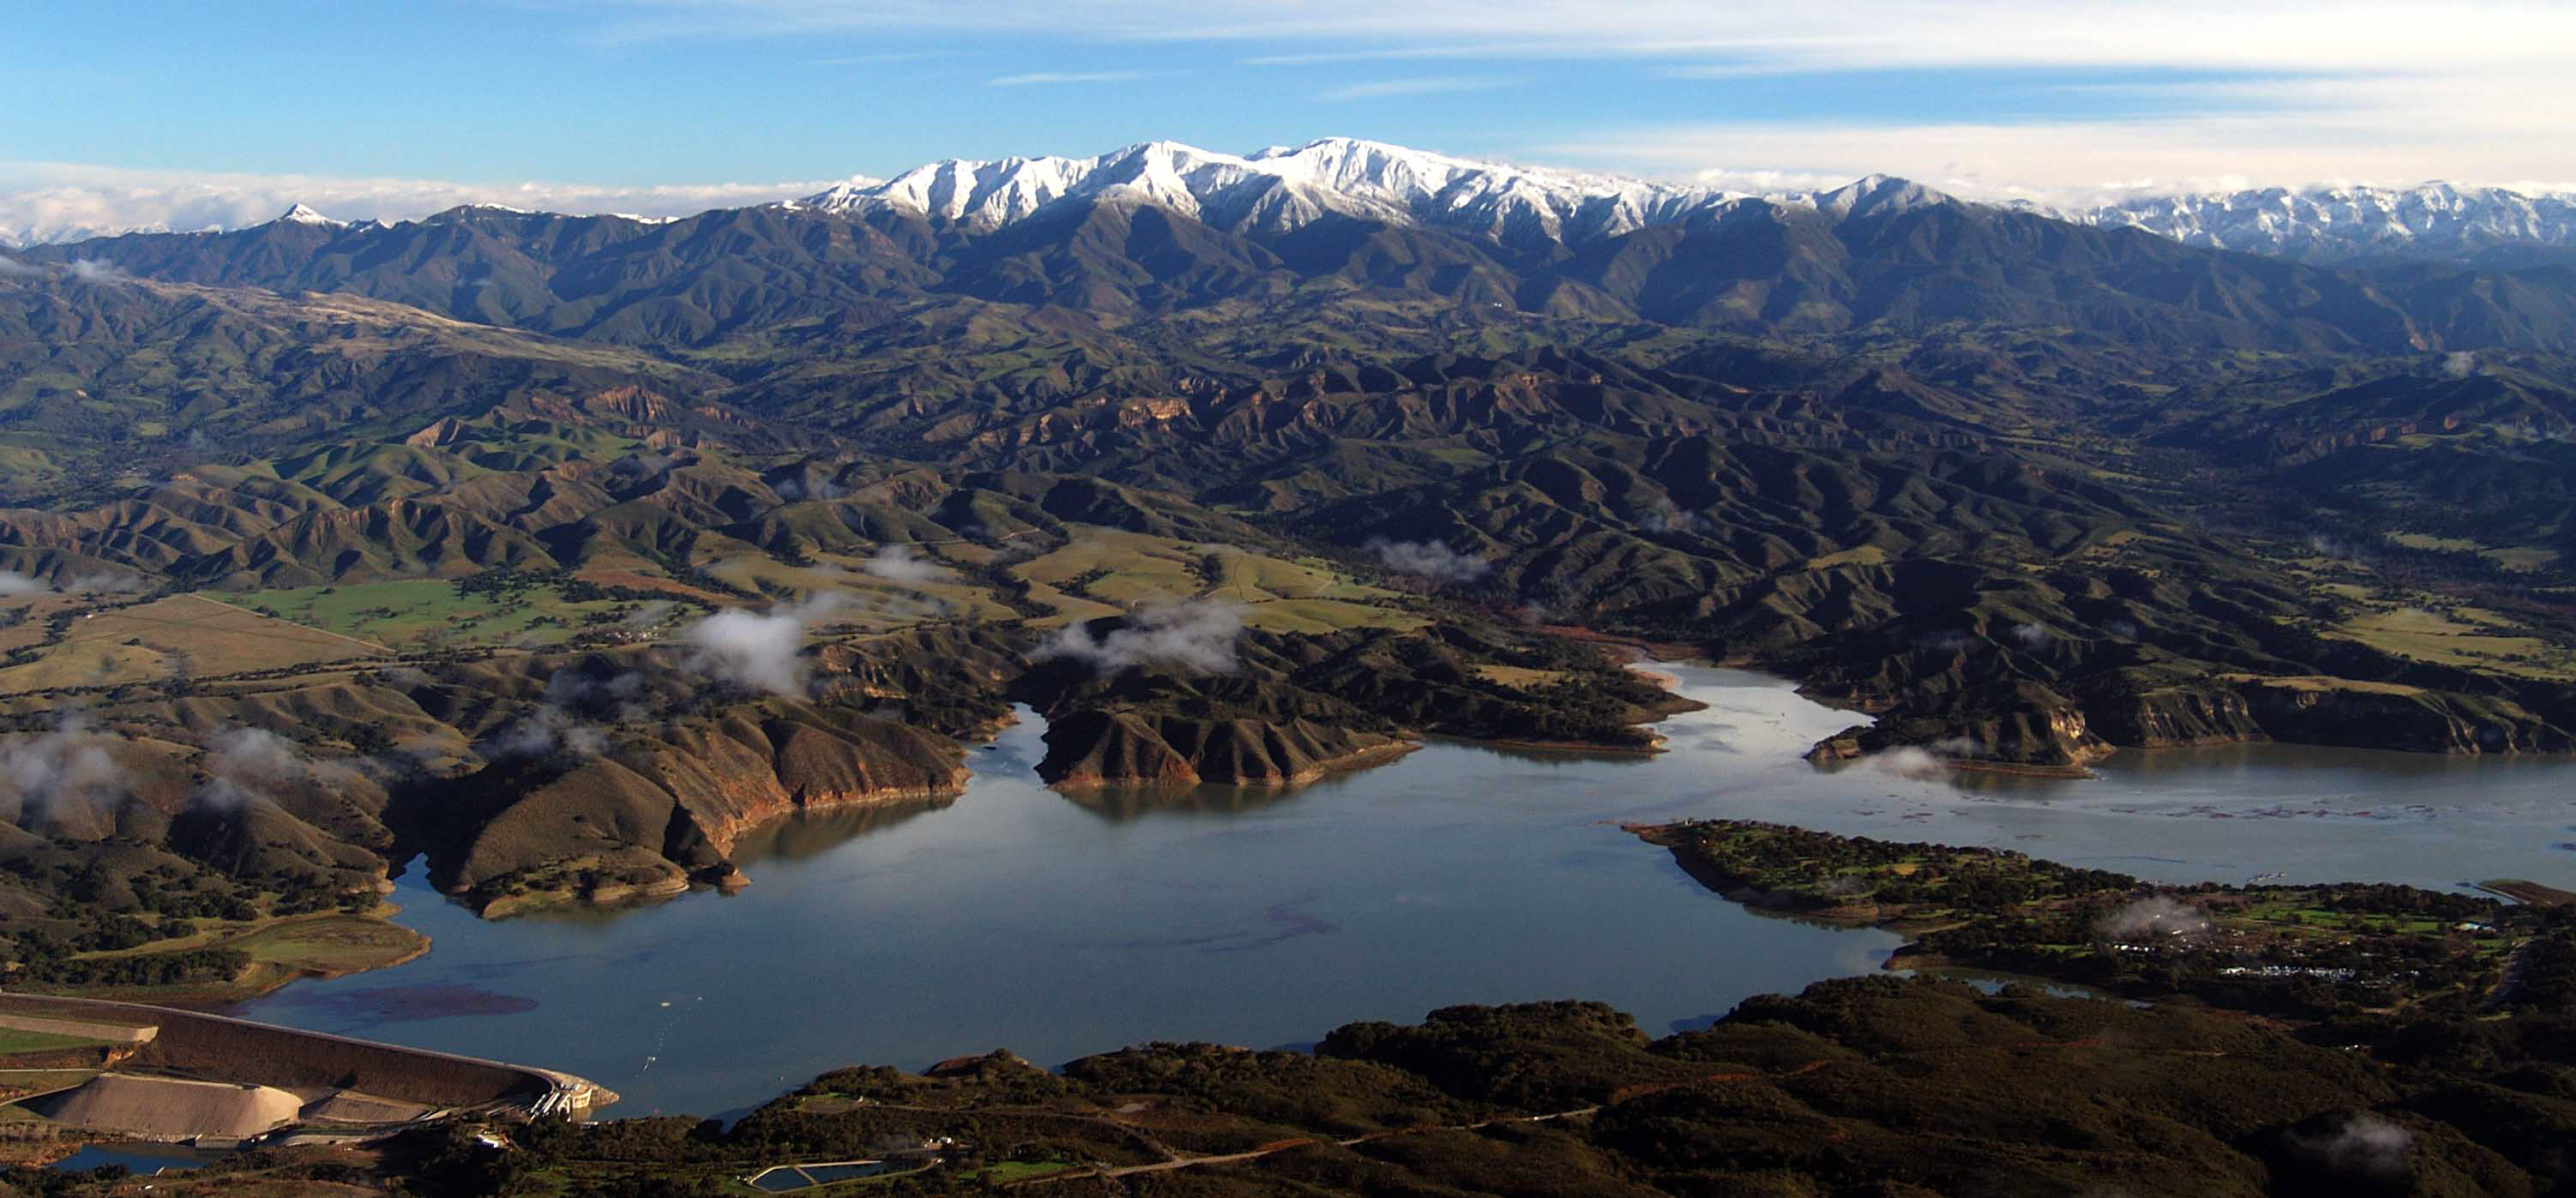 Aerial photo of Lake Cachuma in winter with snow capped mountains in background